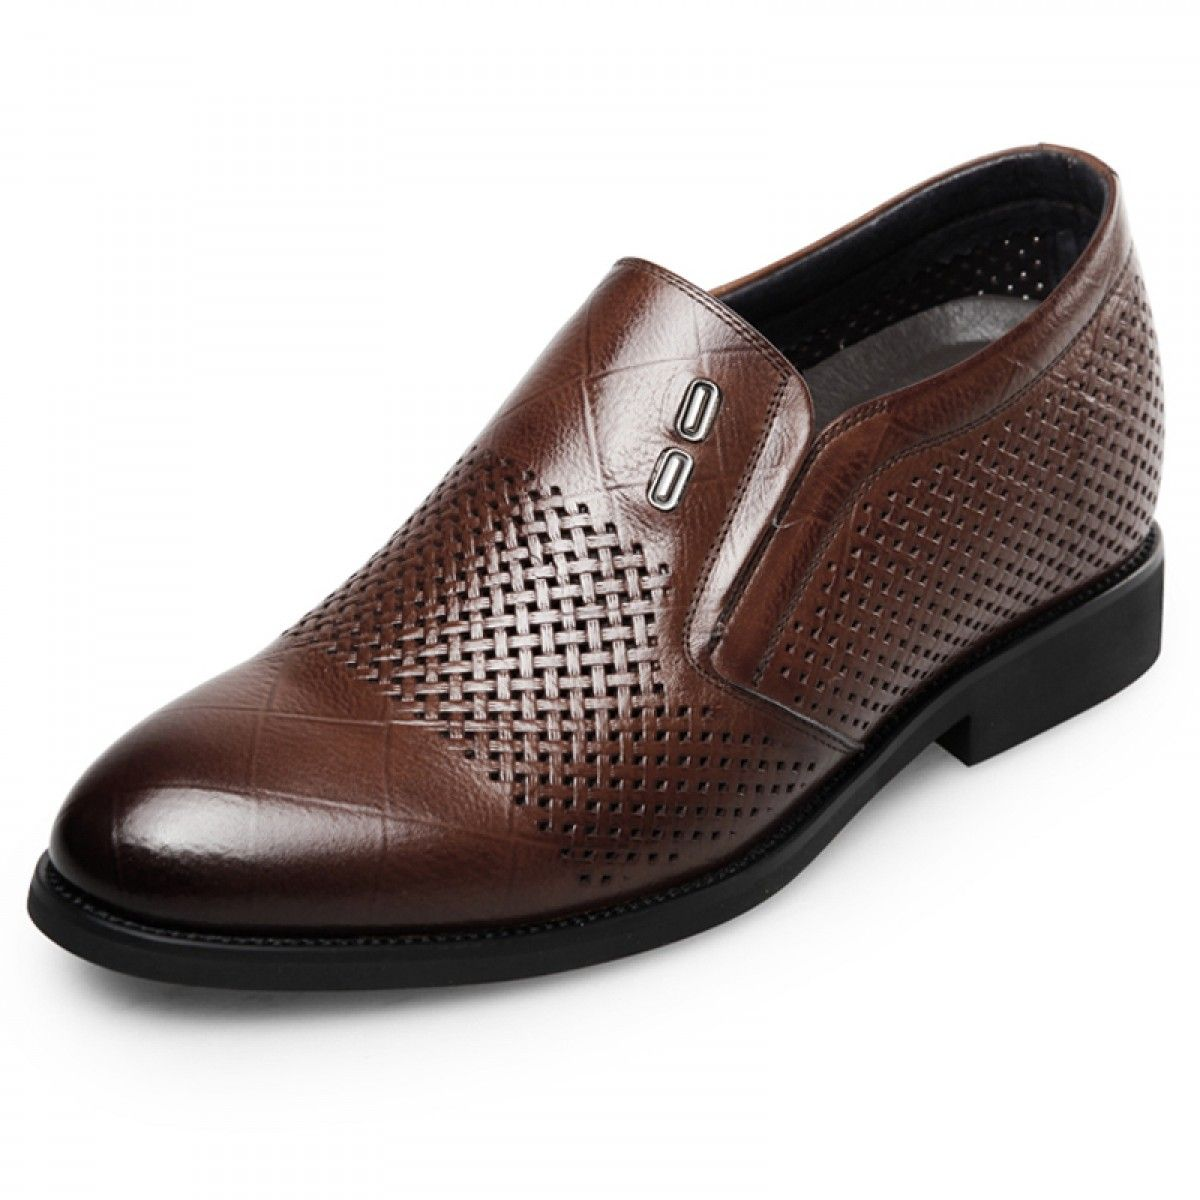 stylish slip on height increasing formal shoes 2 6inch 6